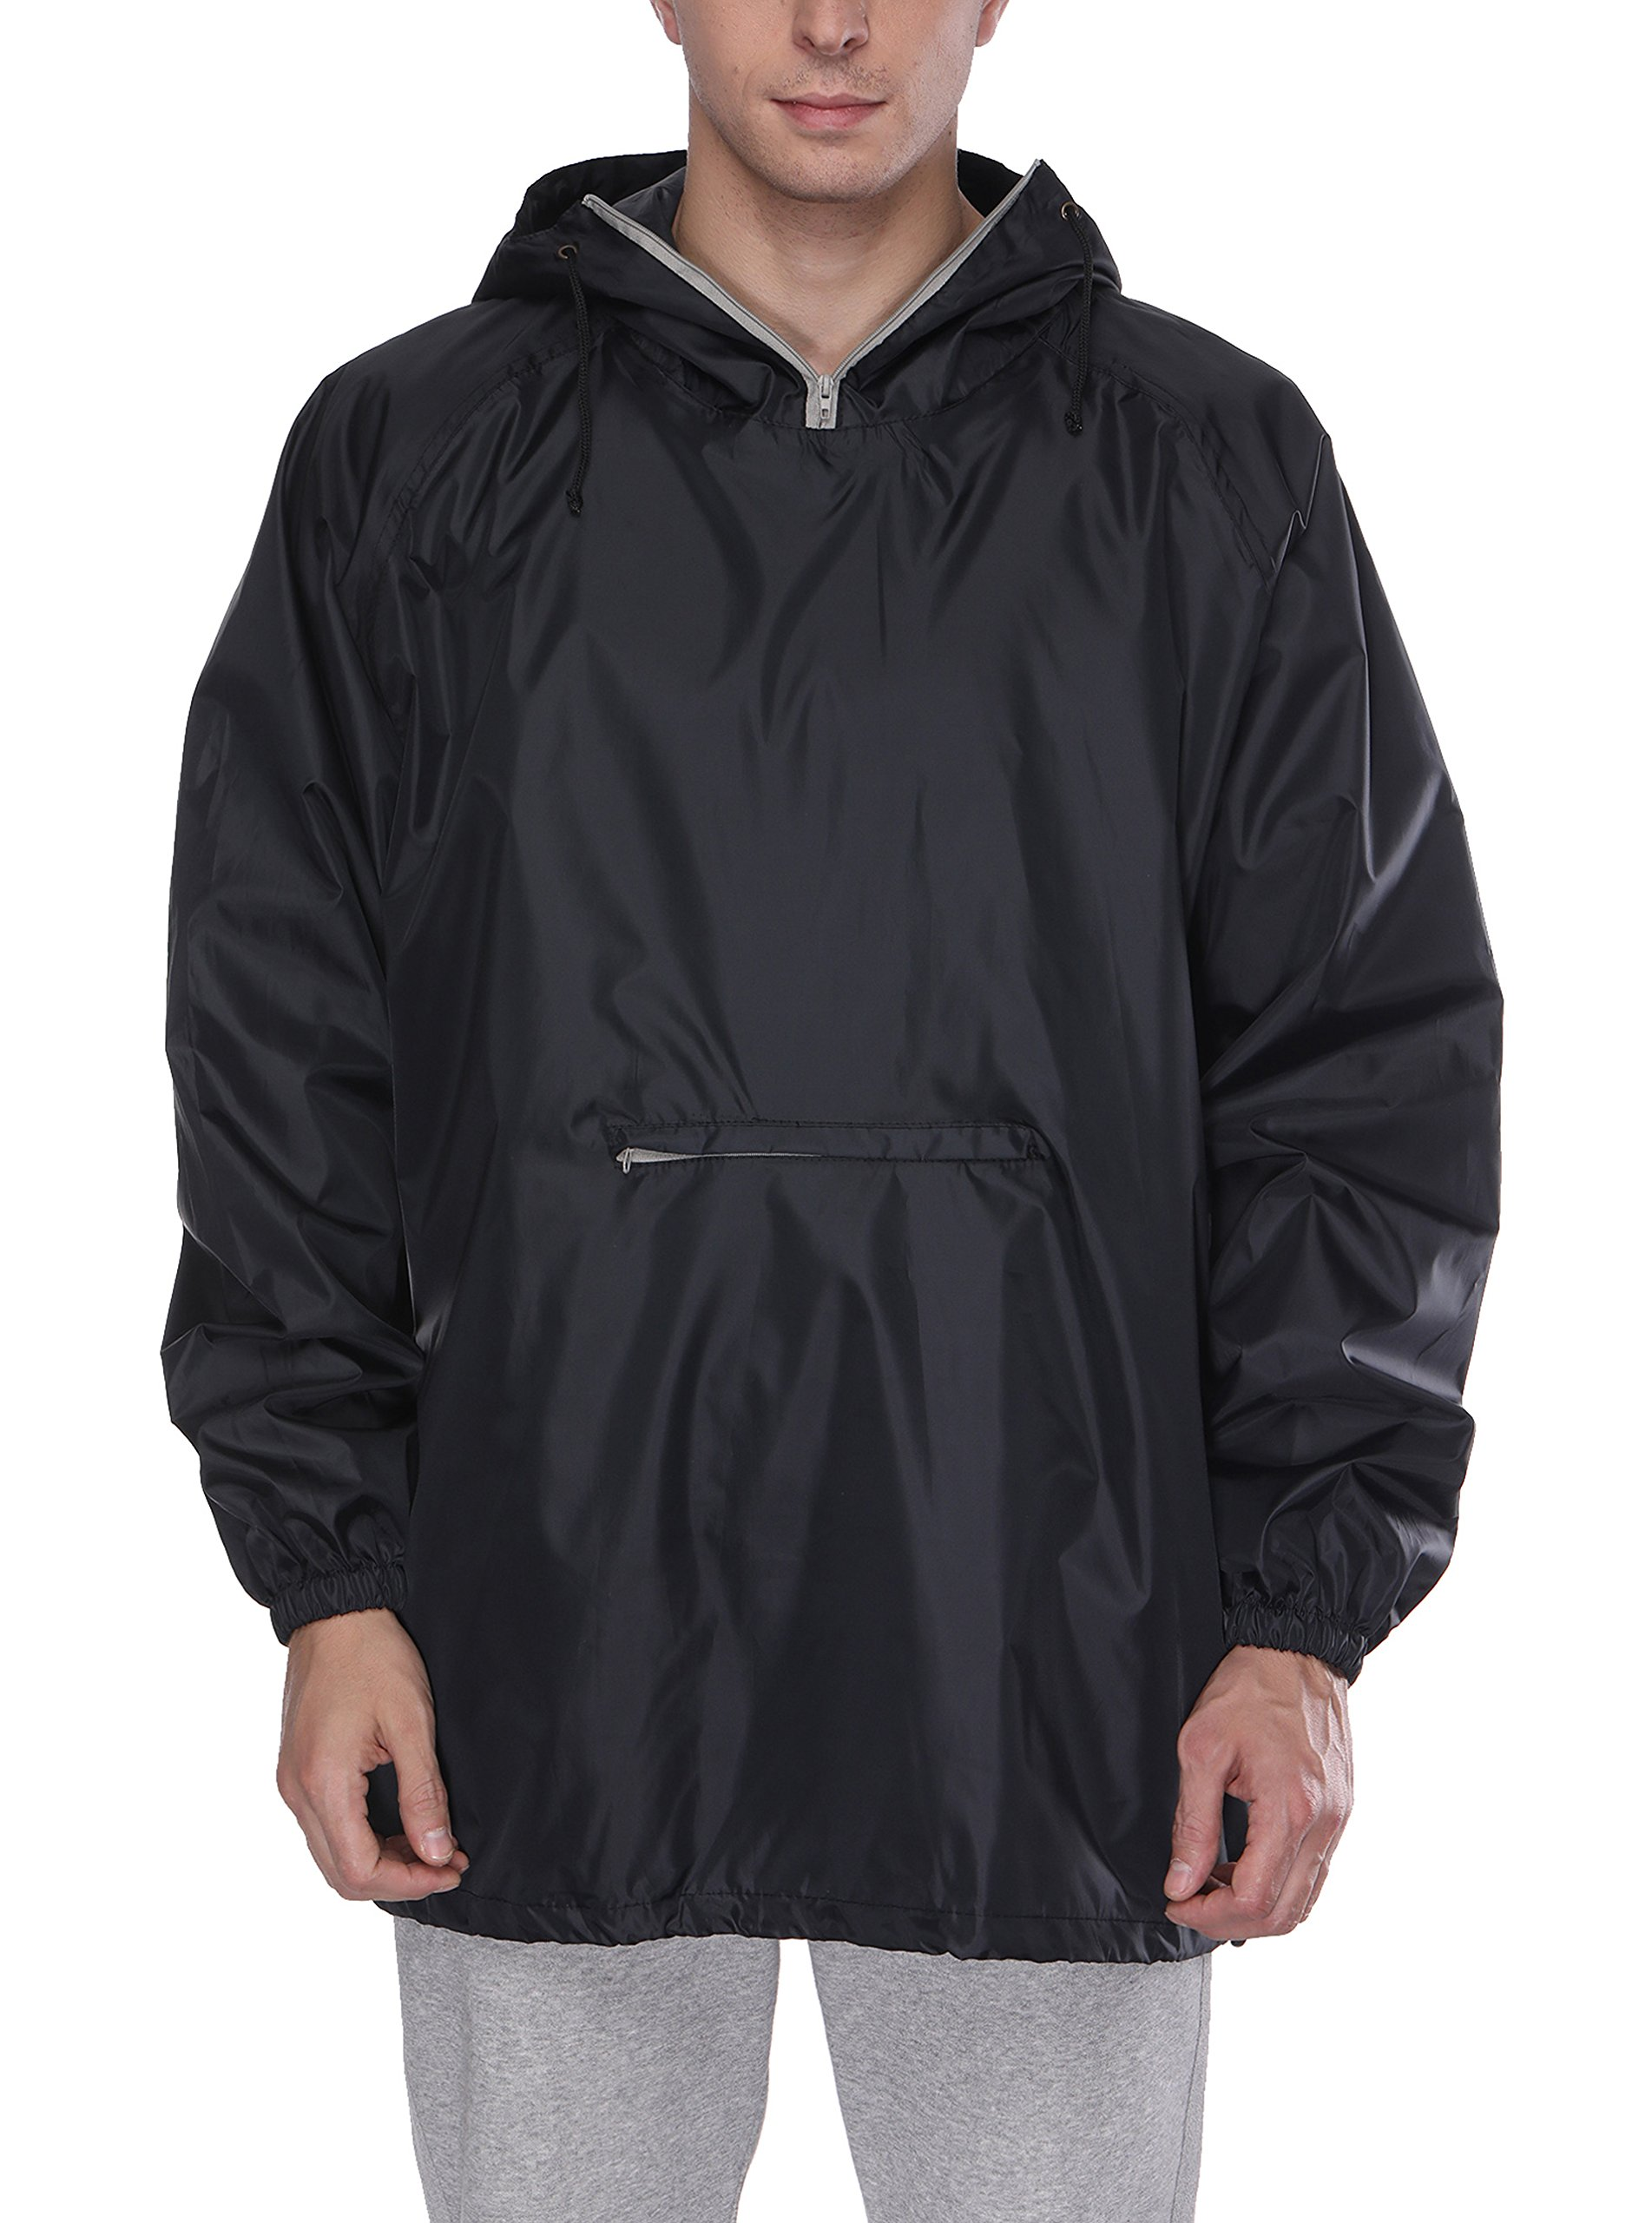 SWISSWELL Men's Classic Rain Jacket with Hood Black Small by SWISSWELL